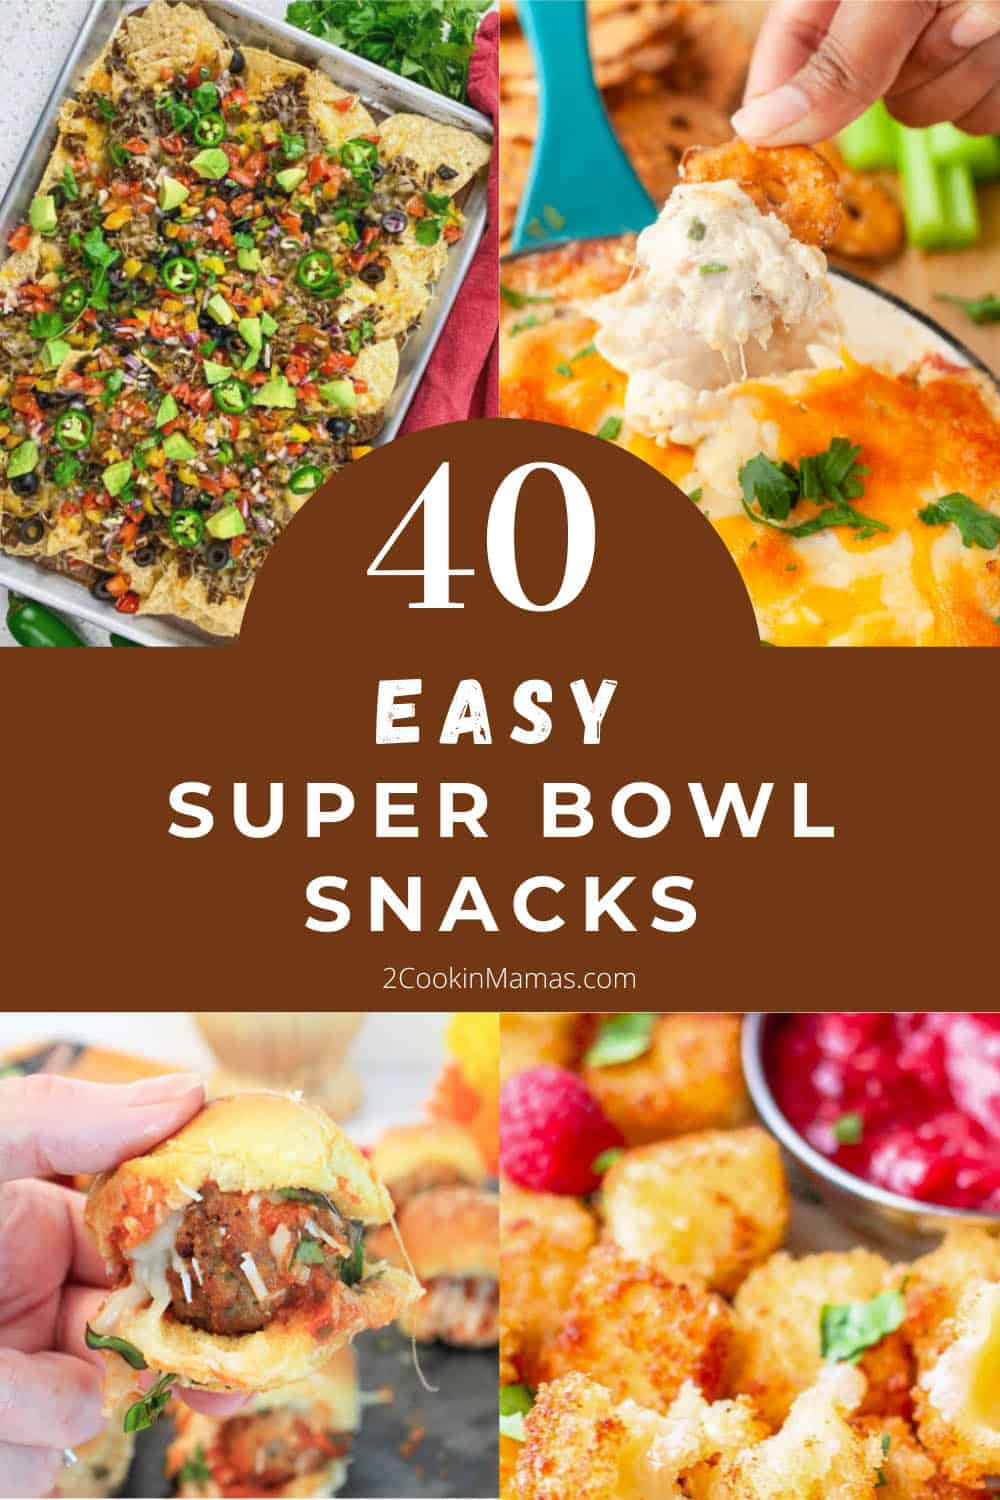 Collage of 40 easy super bowl snacks with text overlay.